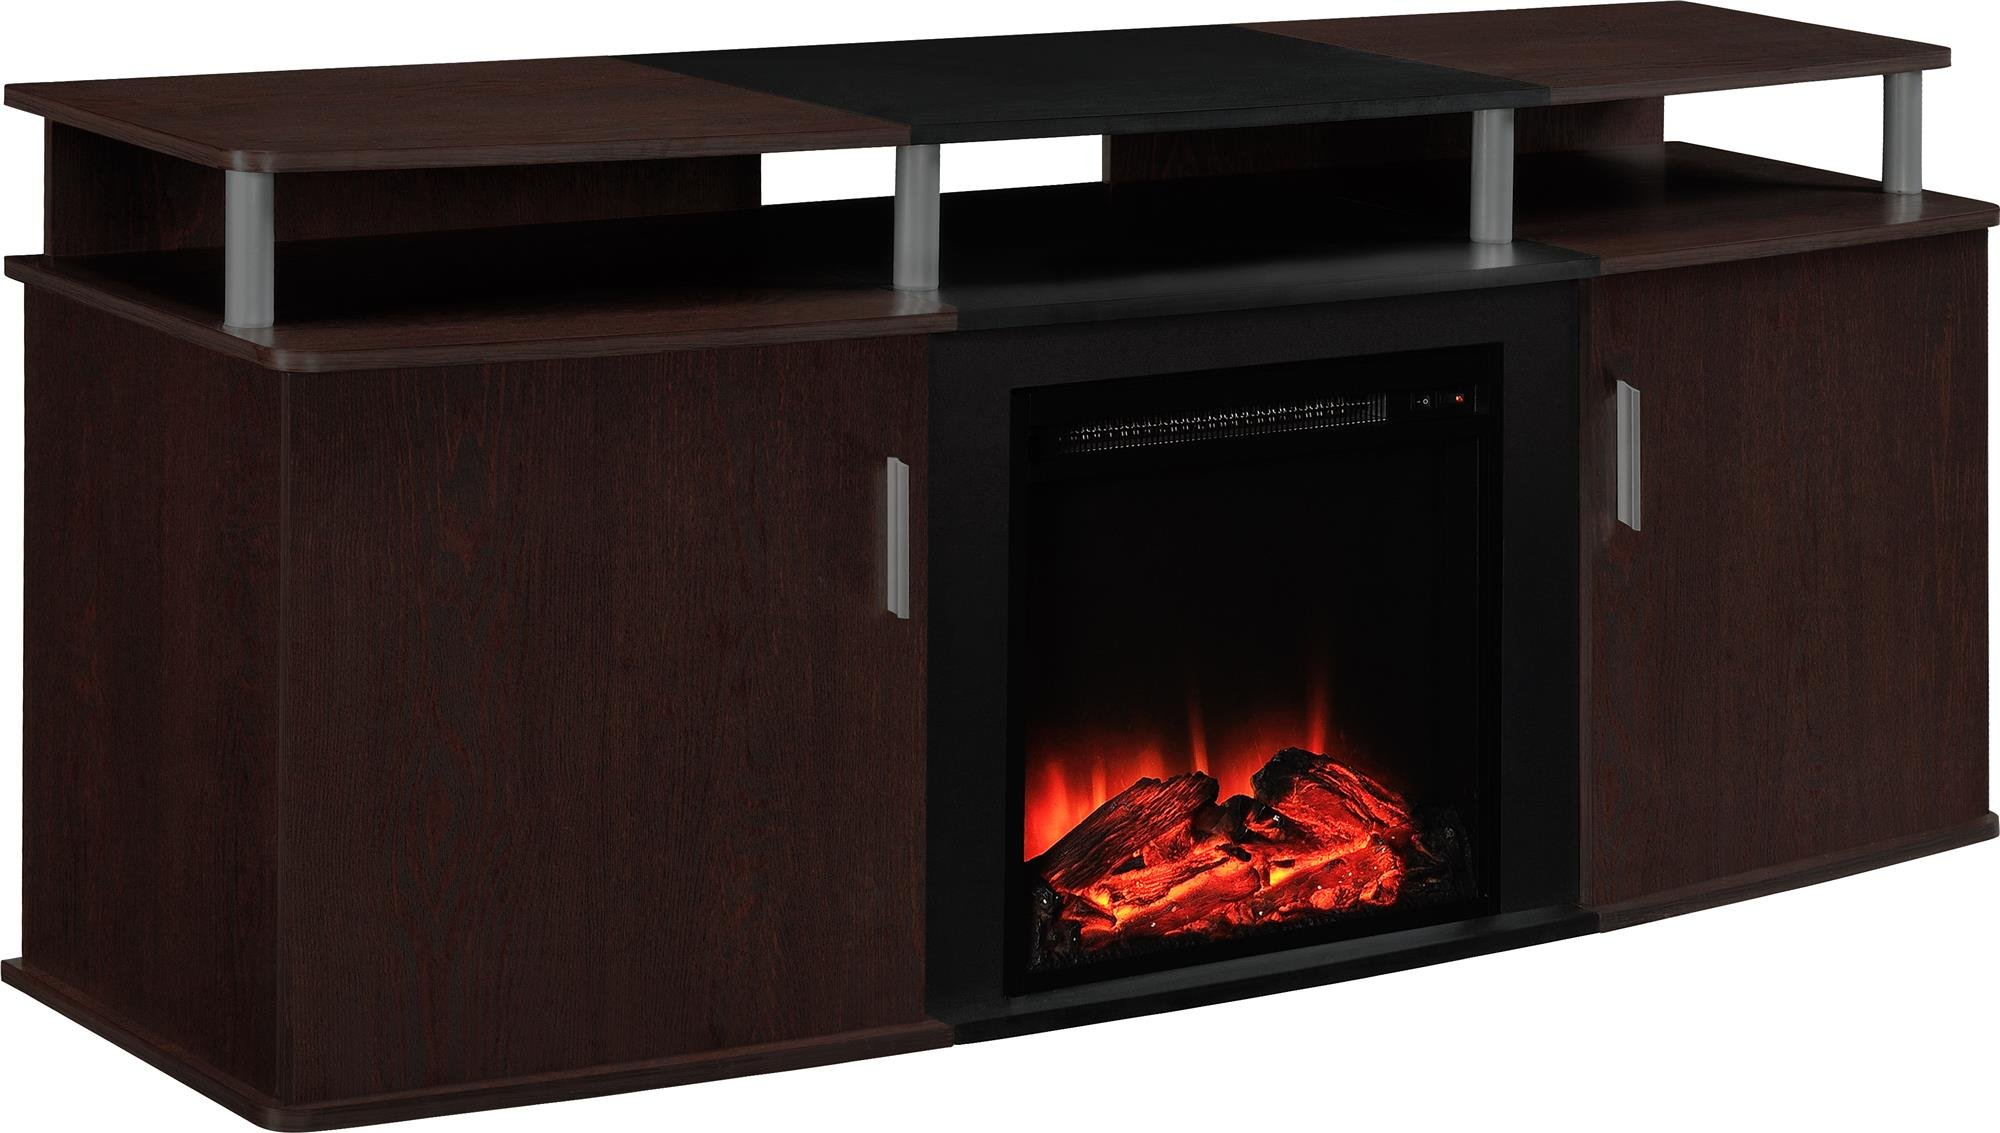 Ameriwood Home Carson Electric Fireplace TV Console for TVs up to 70'', Cherry by Ameriwood Home